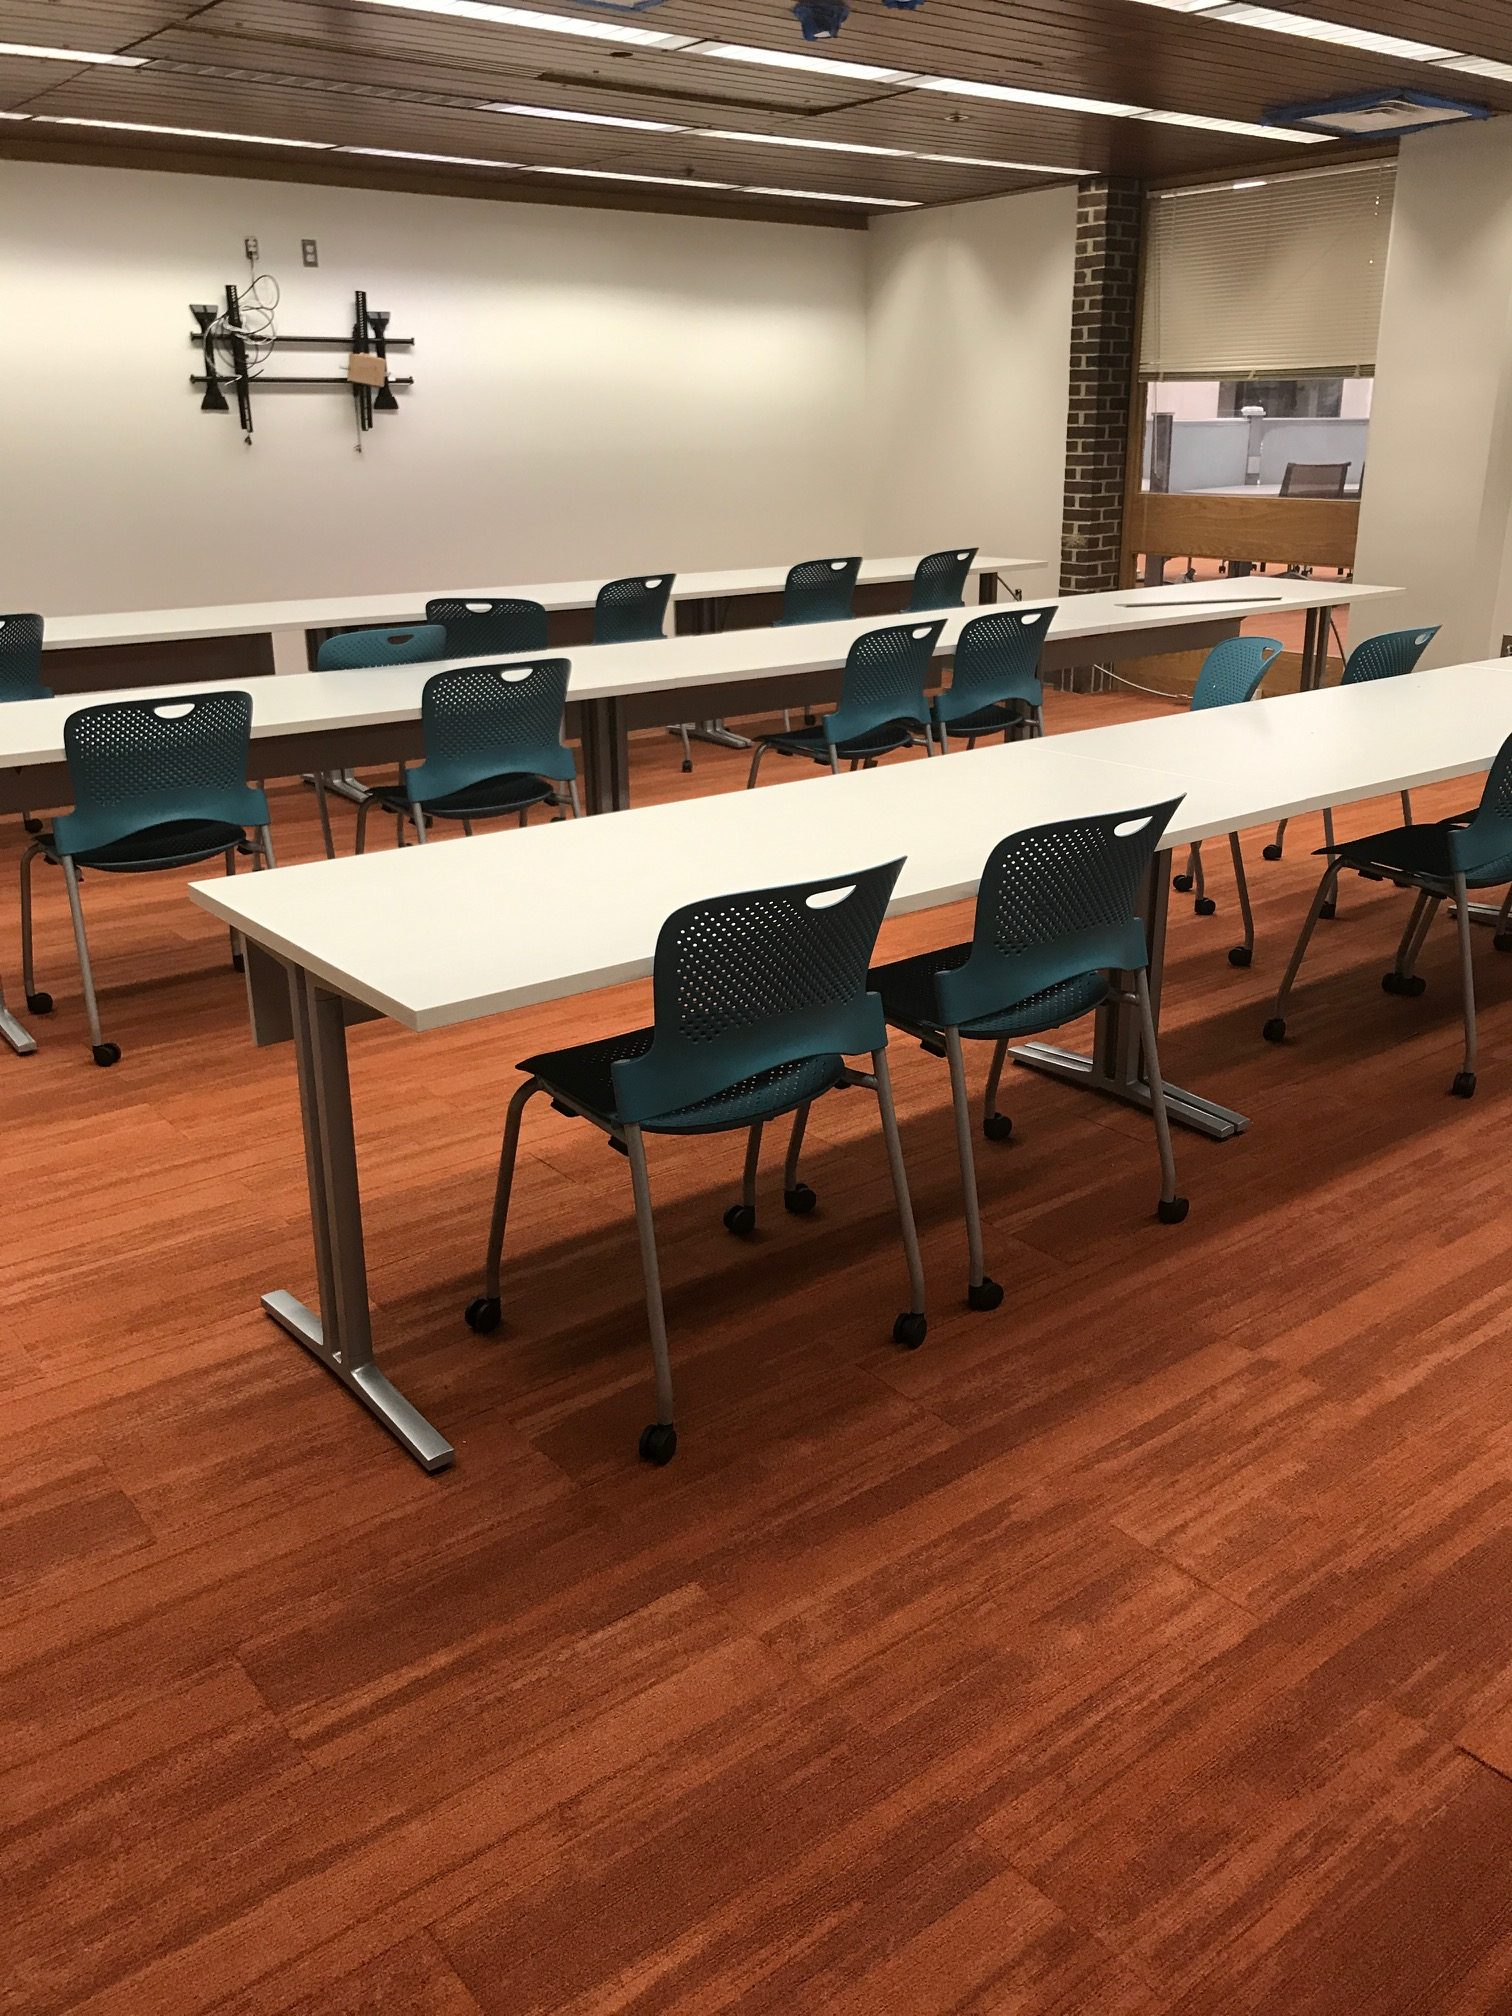 Newly furnished instruction space